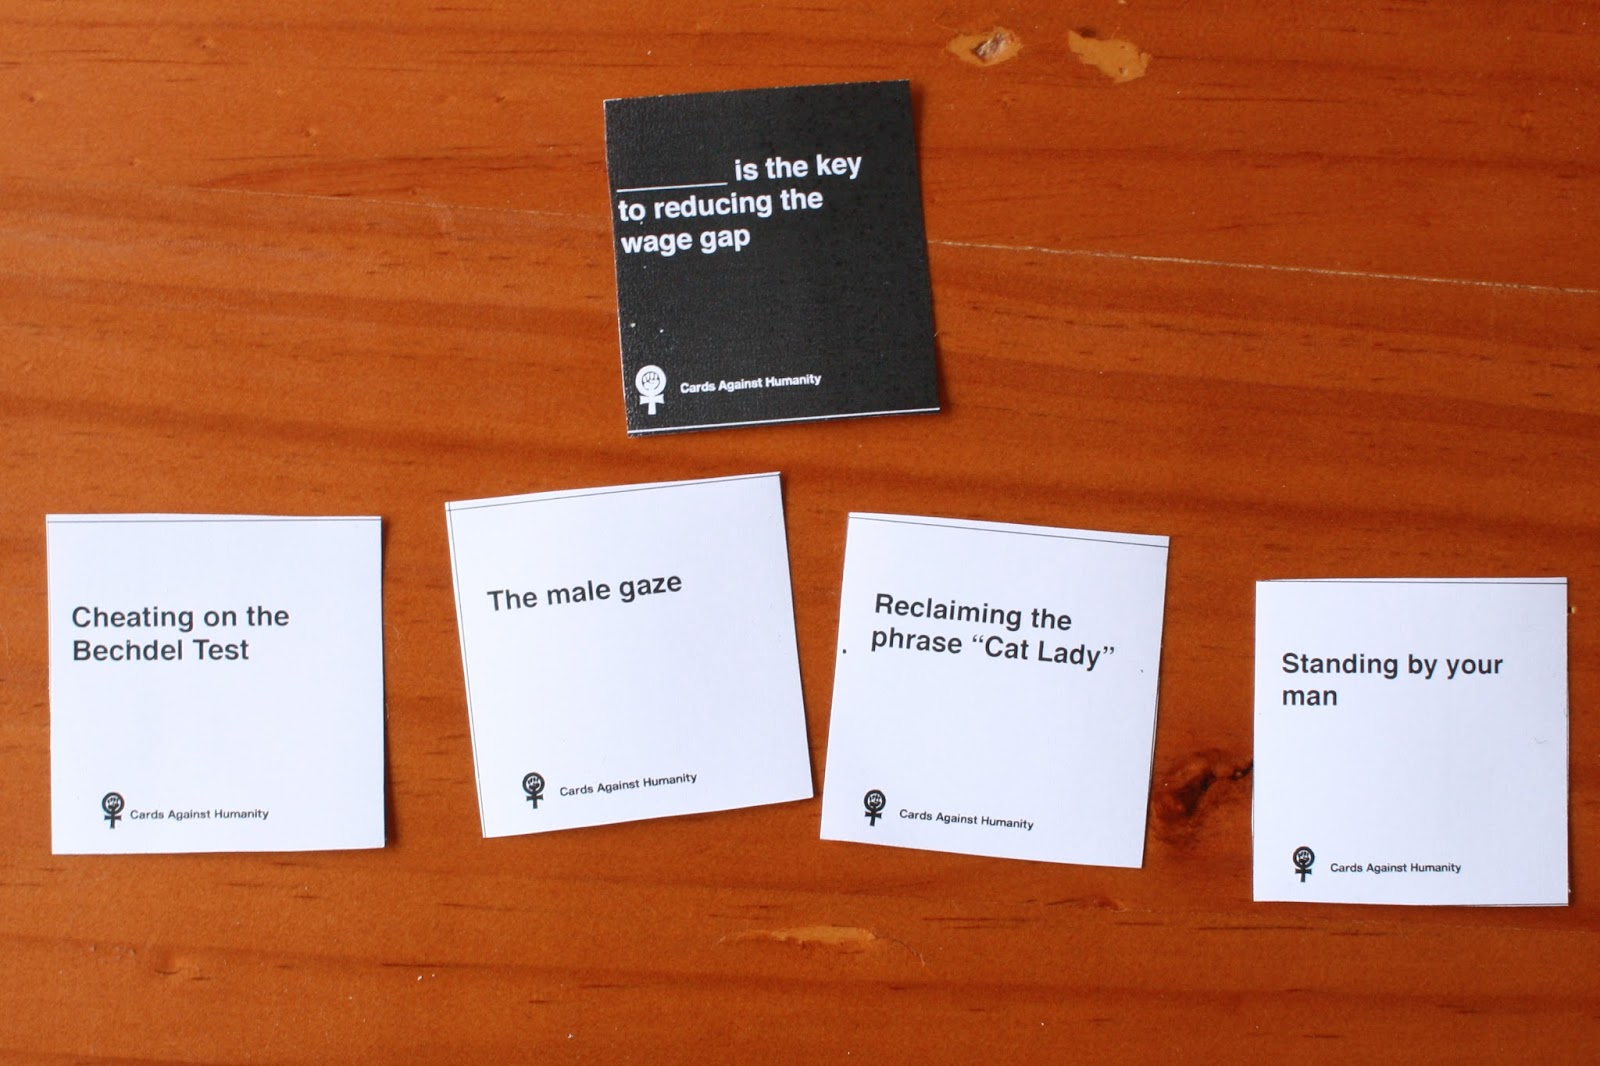 best hook up cards against humanity questions and answers pdf